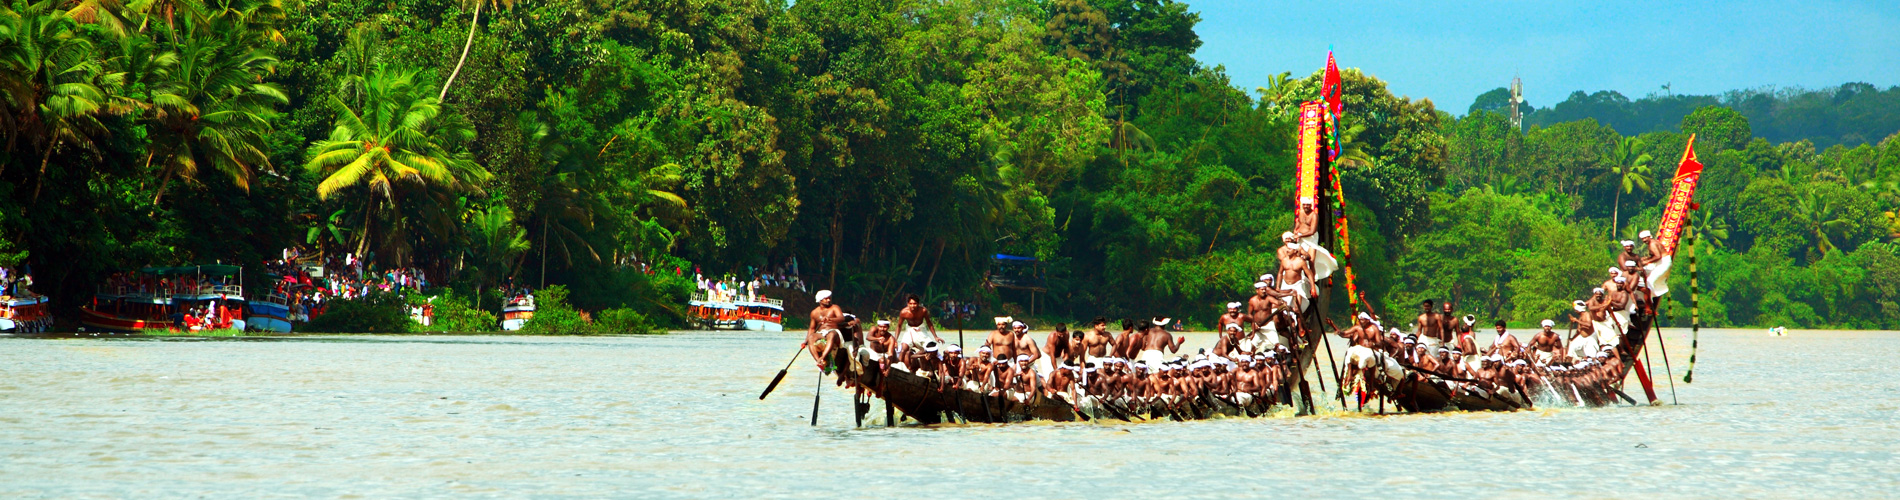 Boat racing in kerala